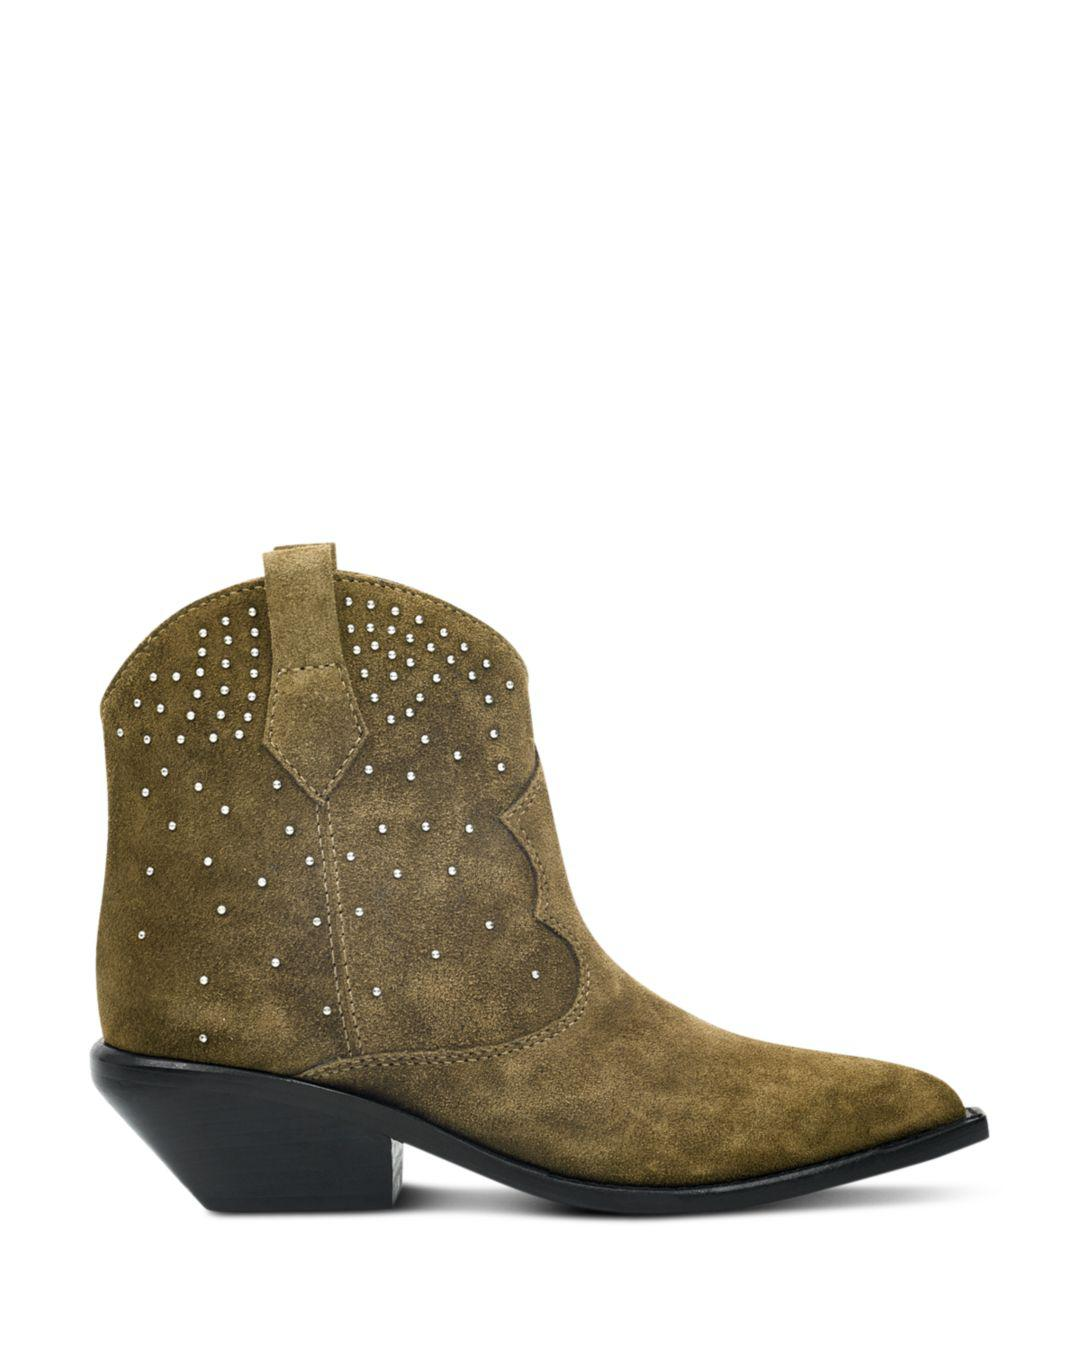 73565d3e117 Lyst - Sigerson Morrison Women s Tira Studded Suede Western Booties in Brown